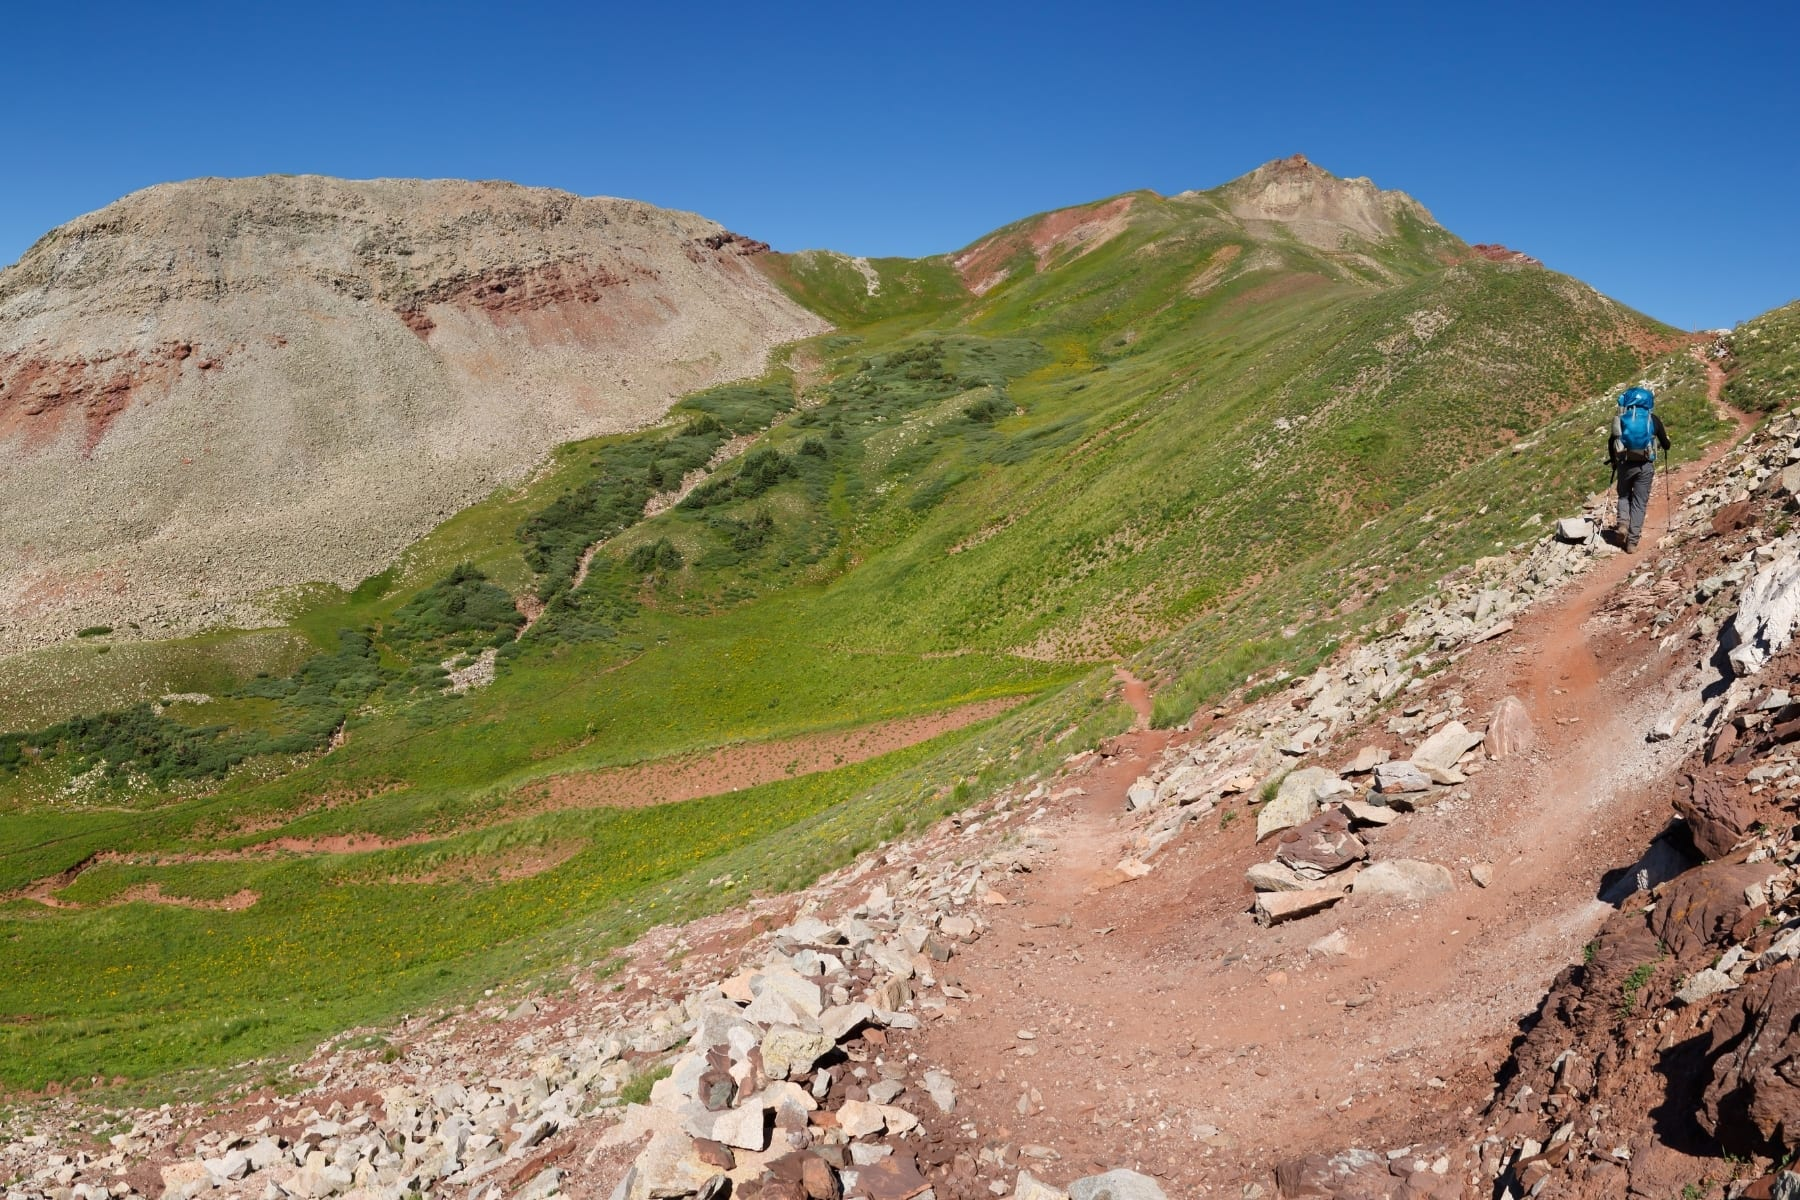 A hiker on the Colorado Trail.